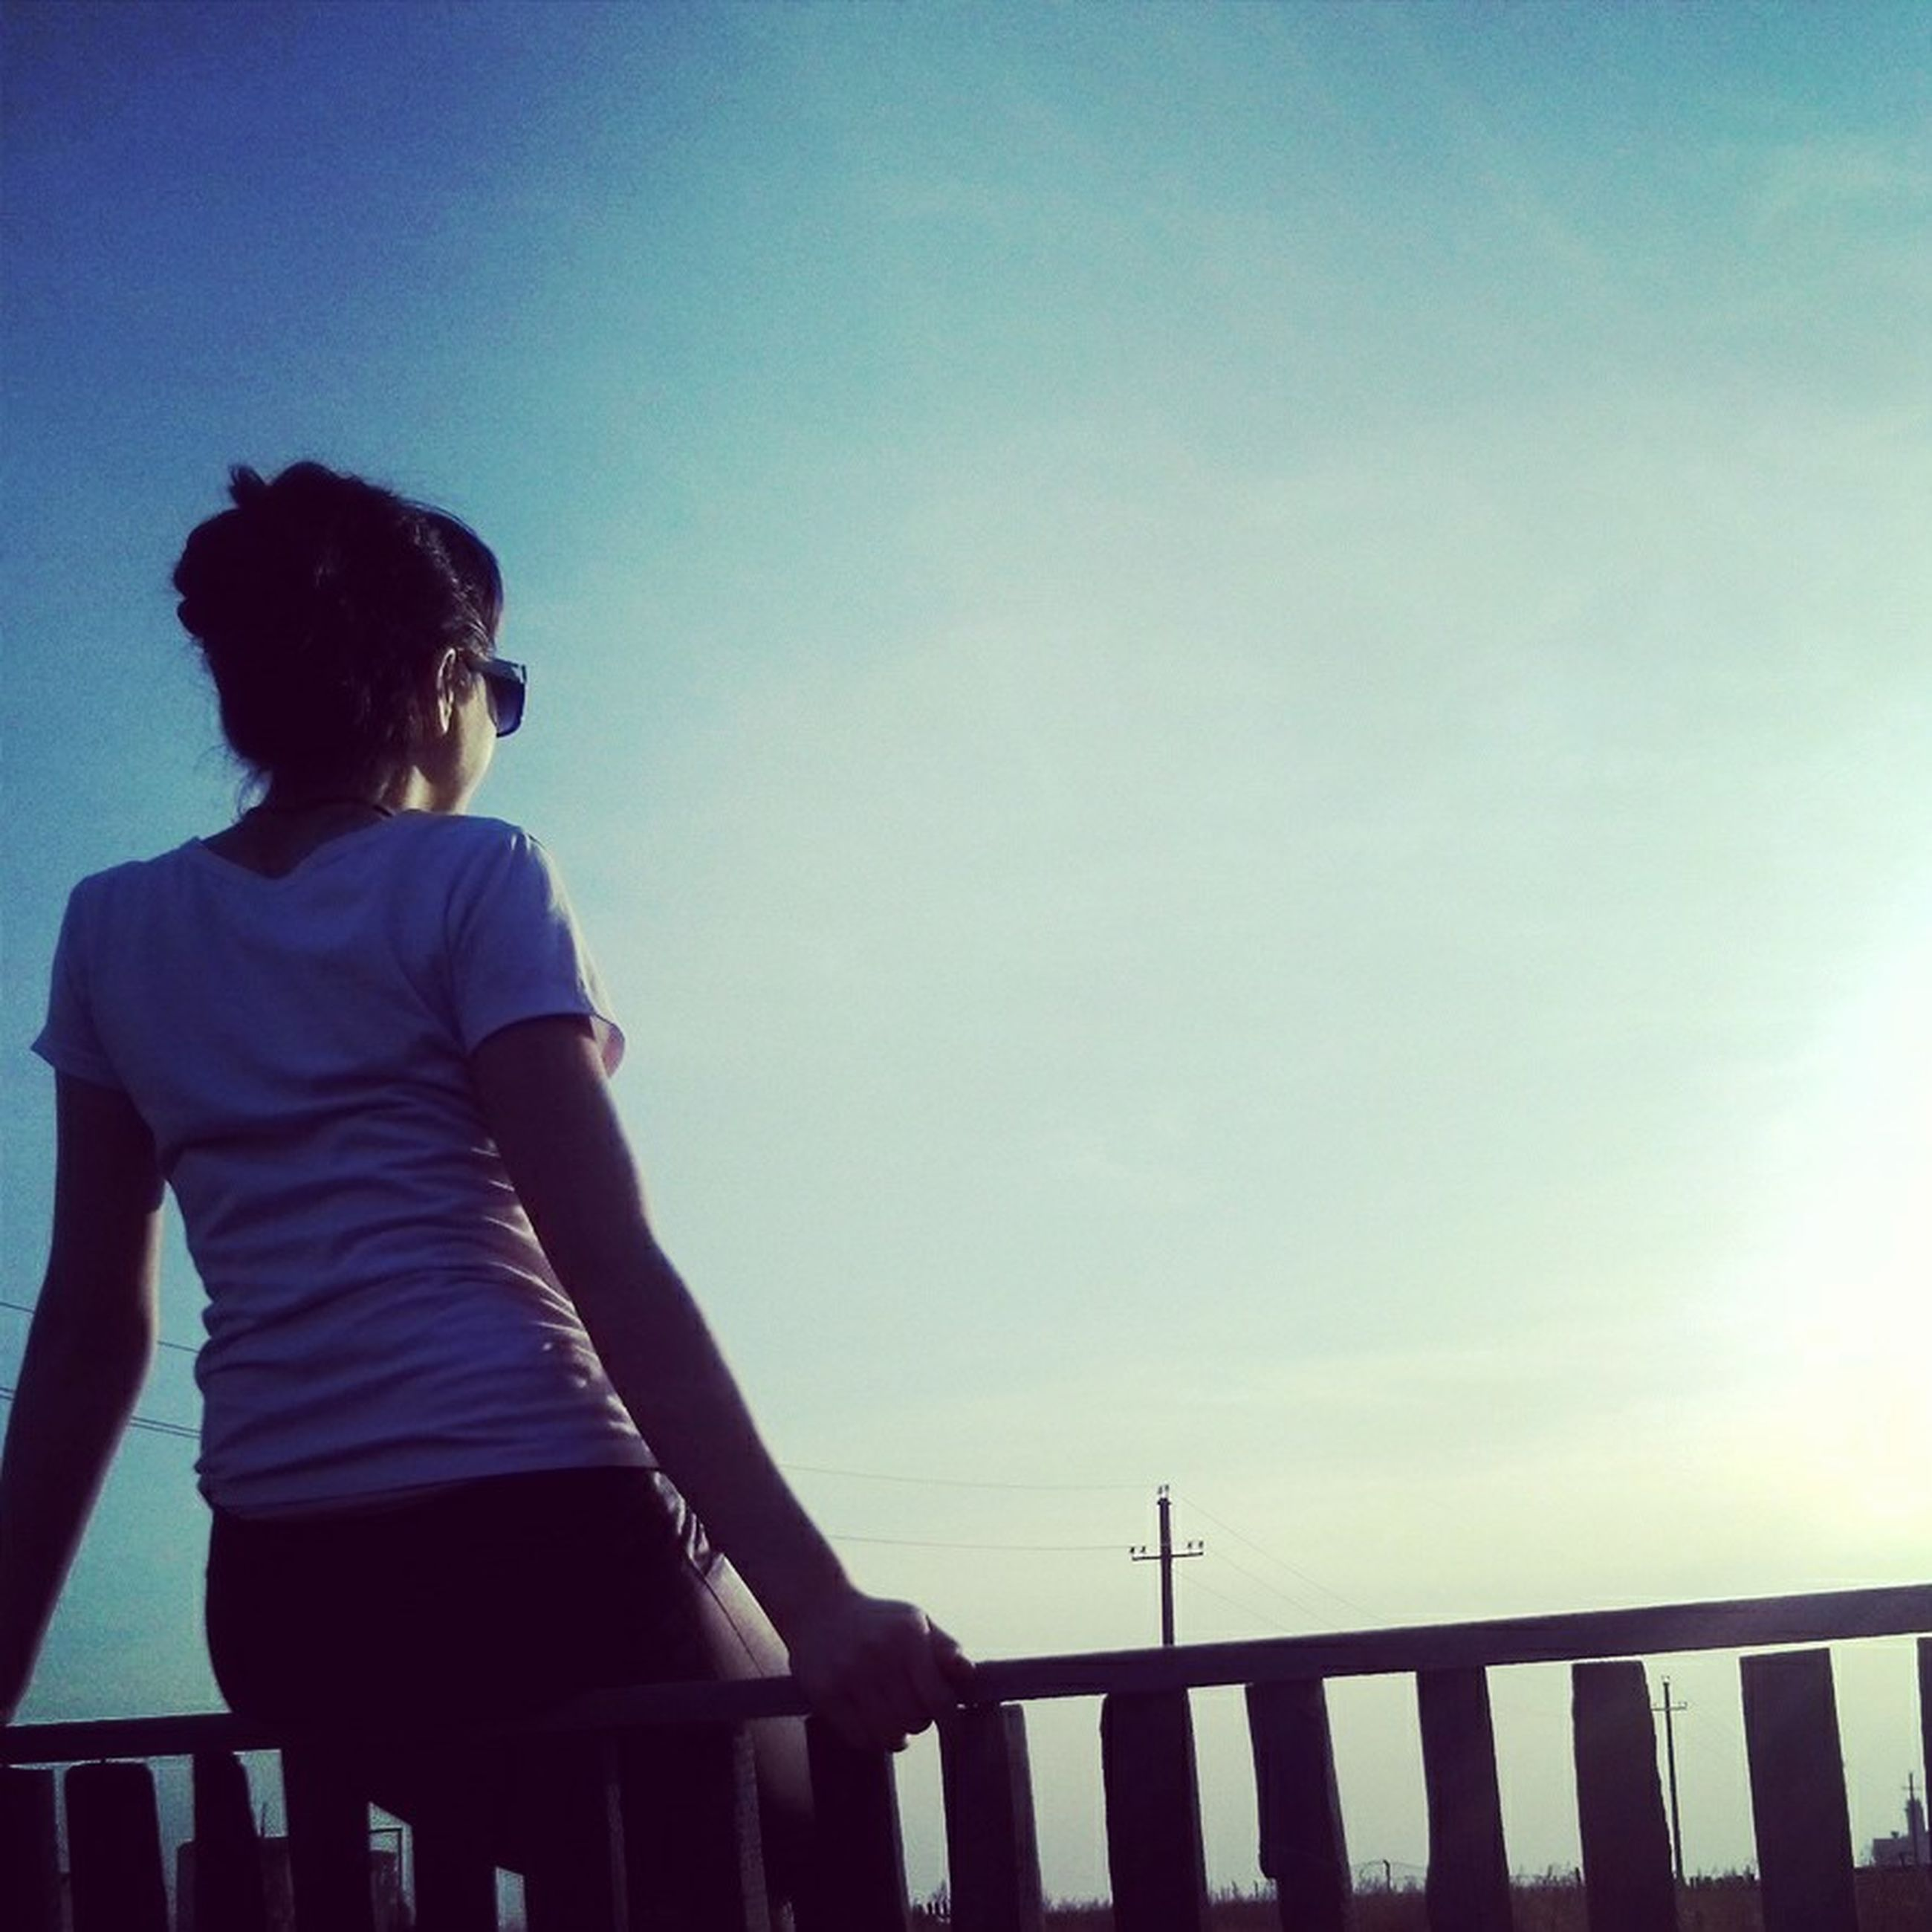 lifestyles, leisure activity, standing, railing, three quarter length, sky, casual clothing, rear view, clear sky, full length, copy space, silhouette, waist up, sitting, looking at view, person, relaxation, blue